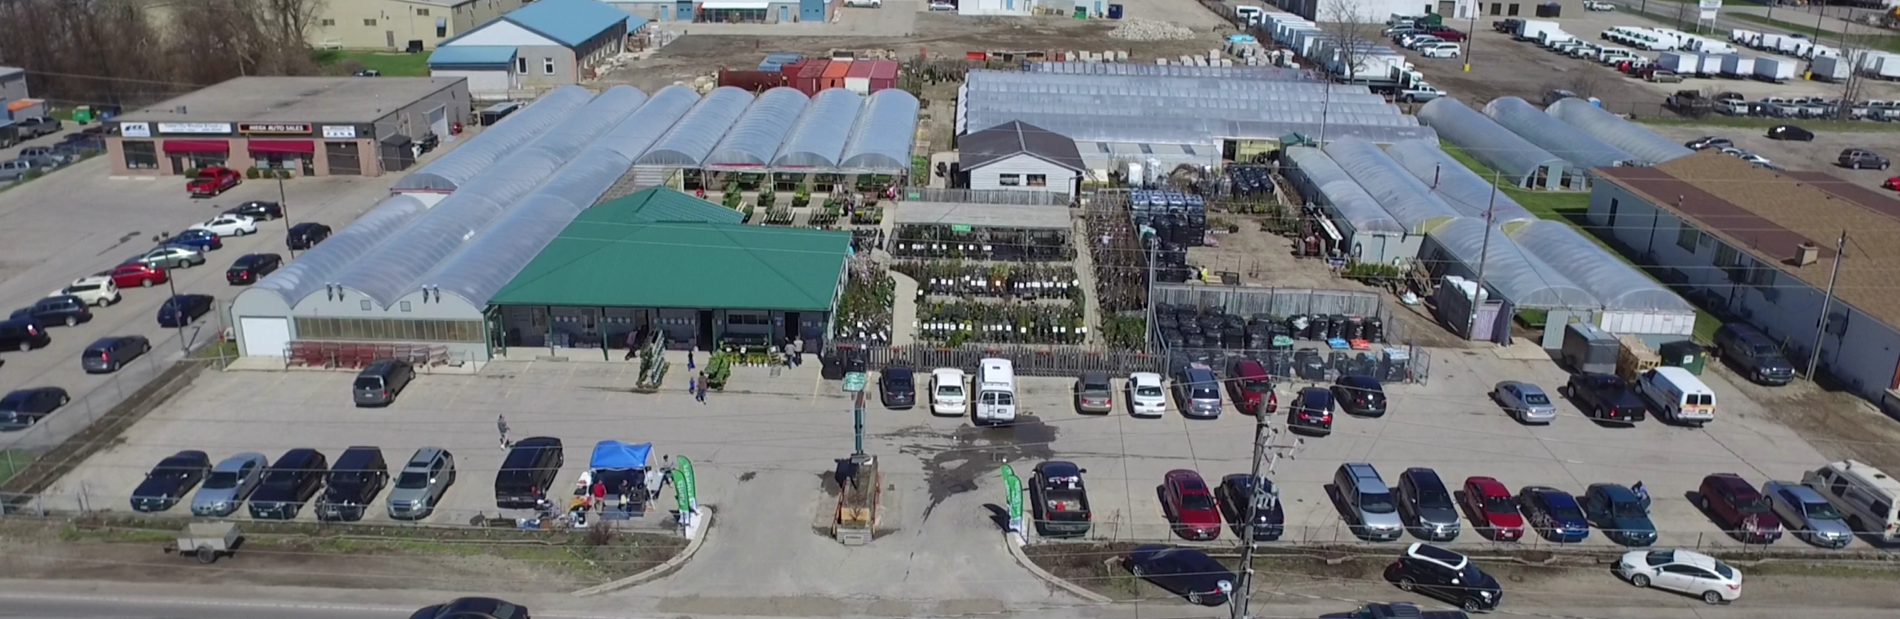 Garden Centre: Top Garden Centre In London, Ontario